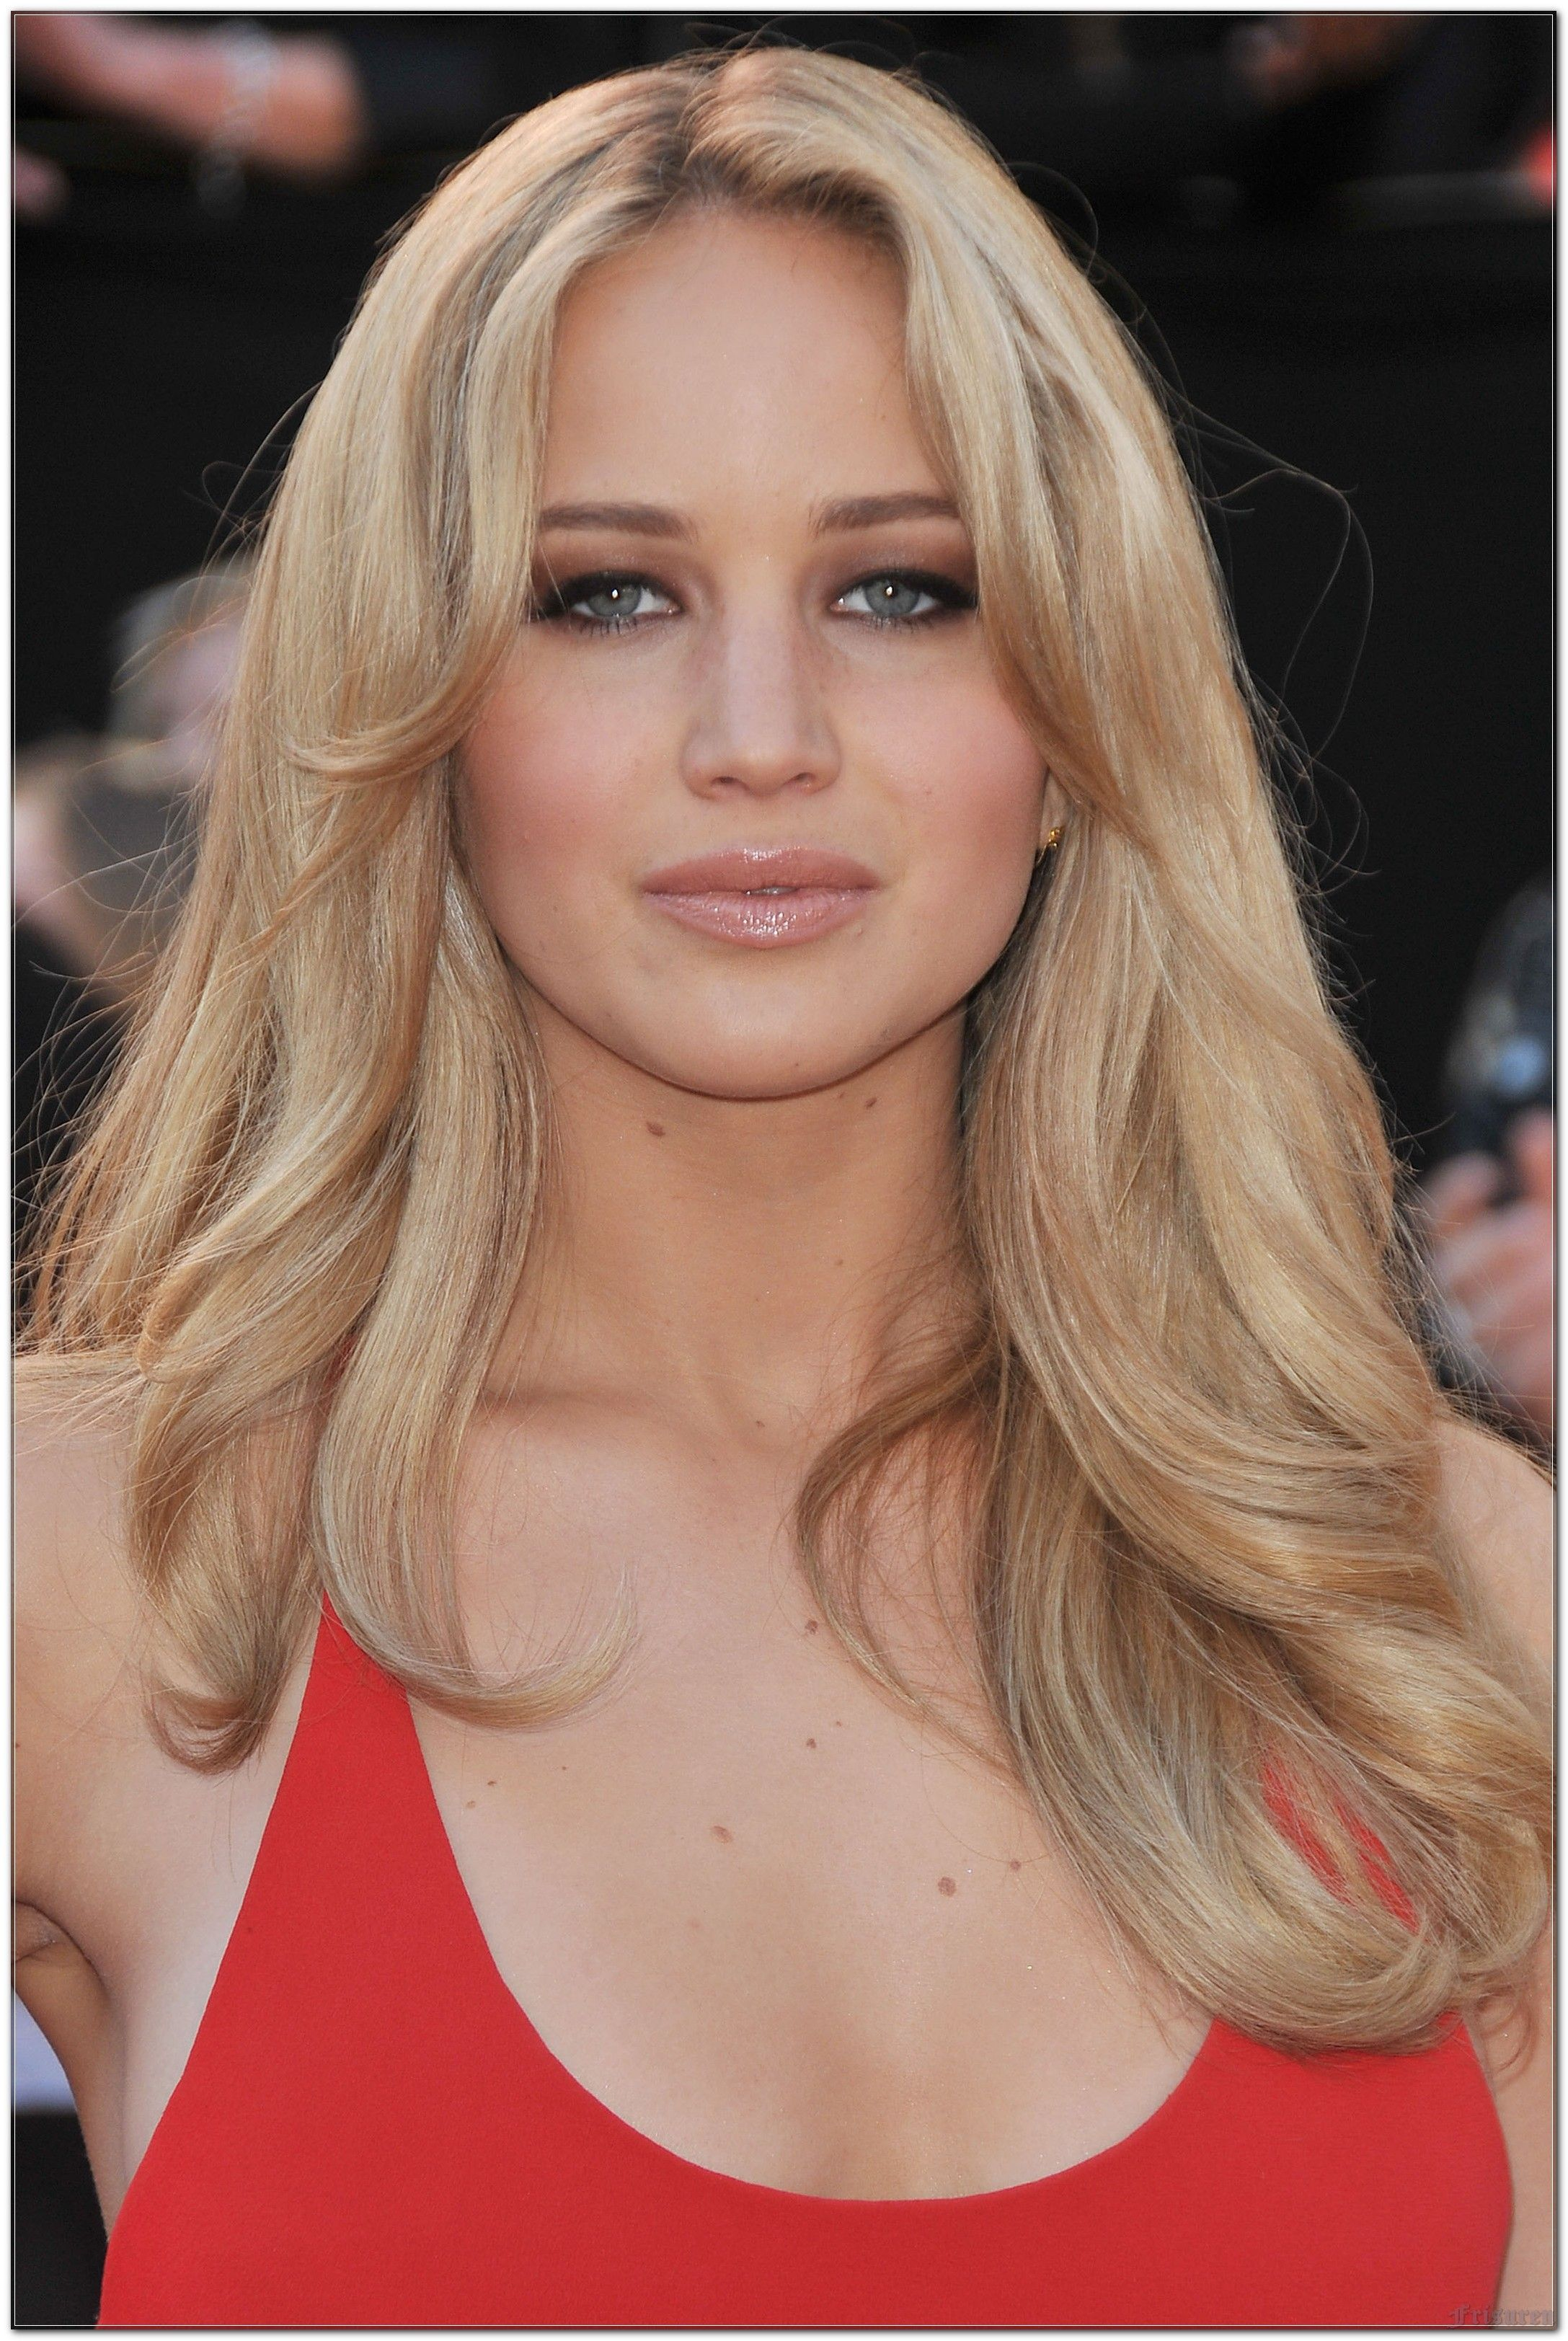 What Is Frisuren and How Does It Work? for 2021